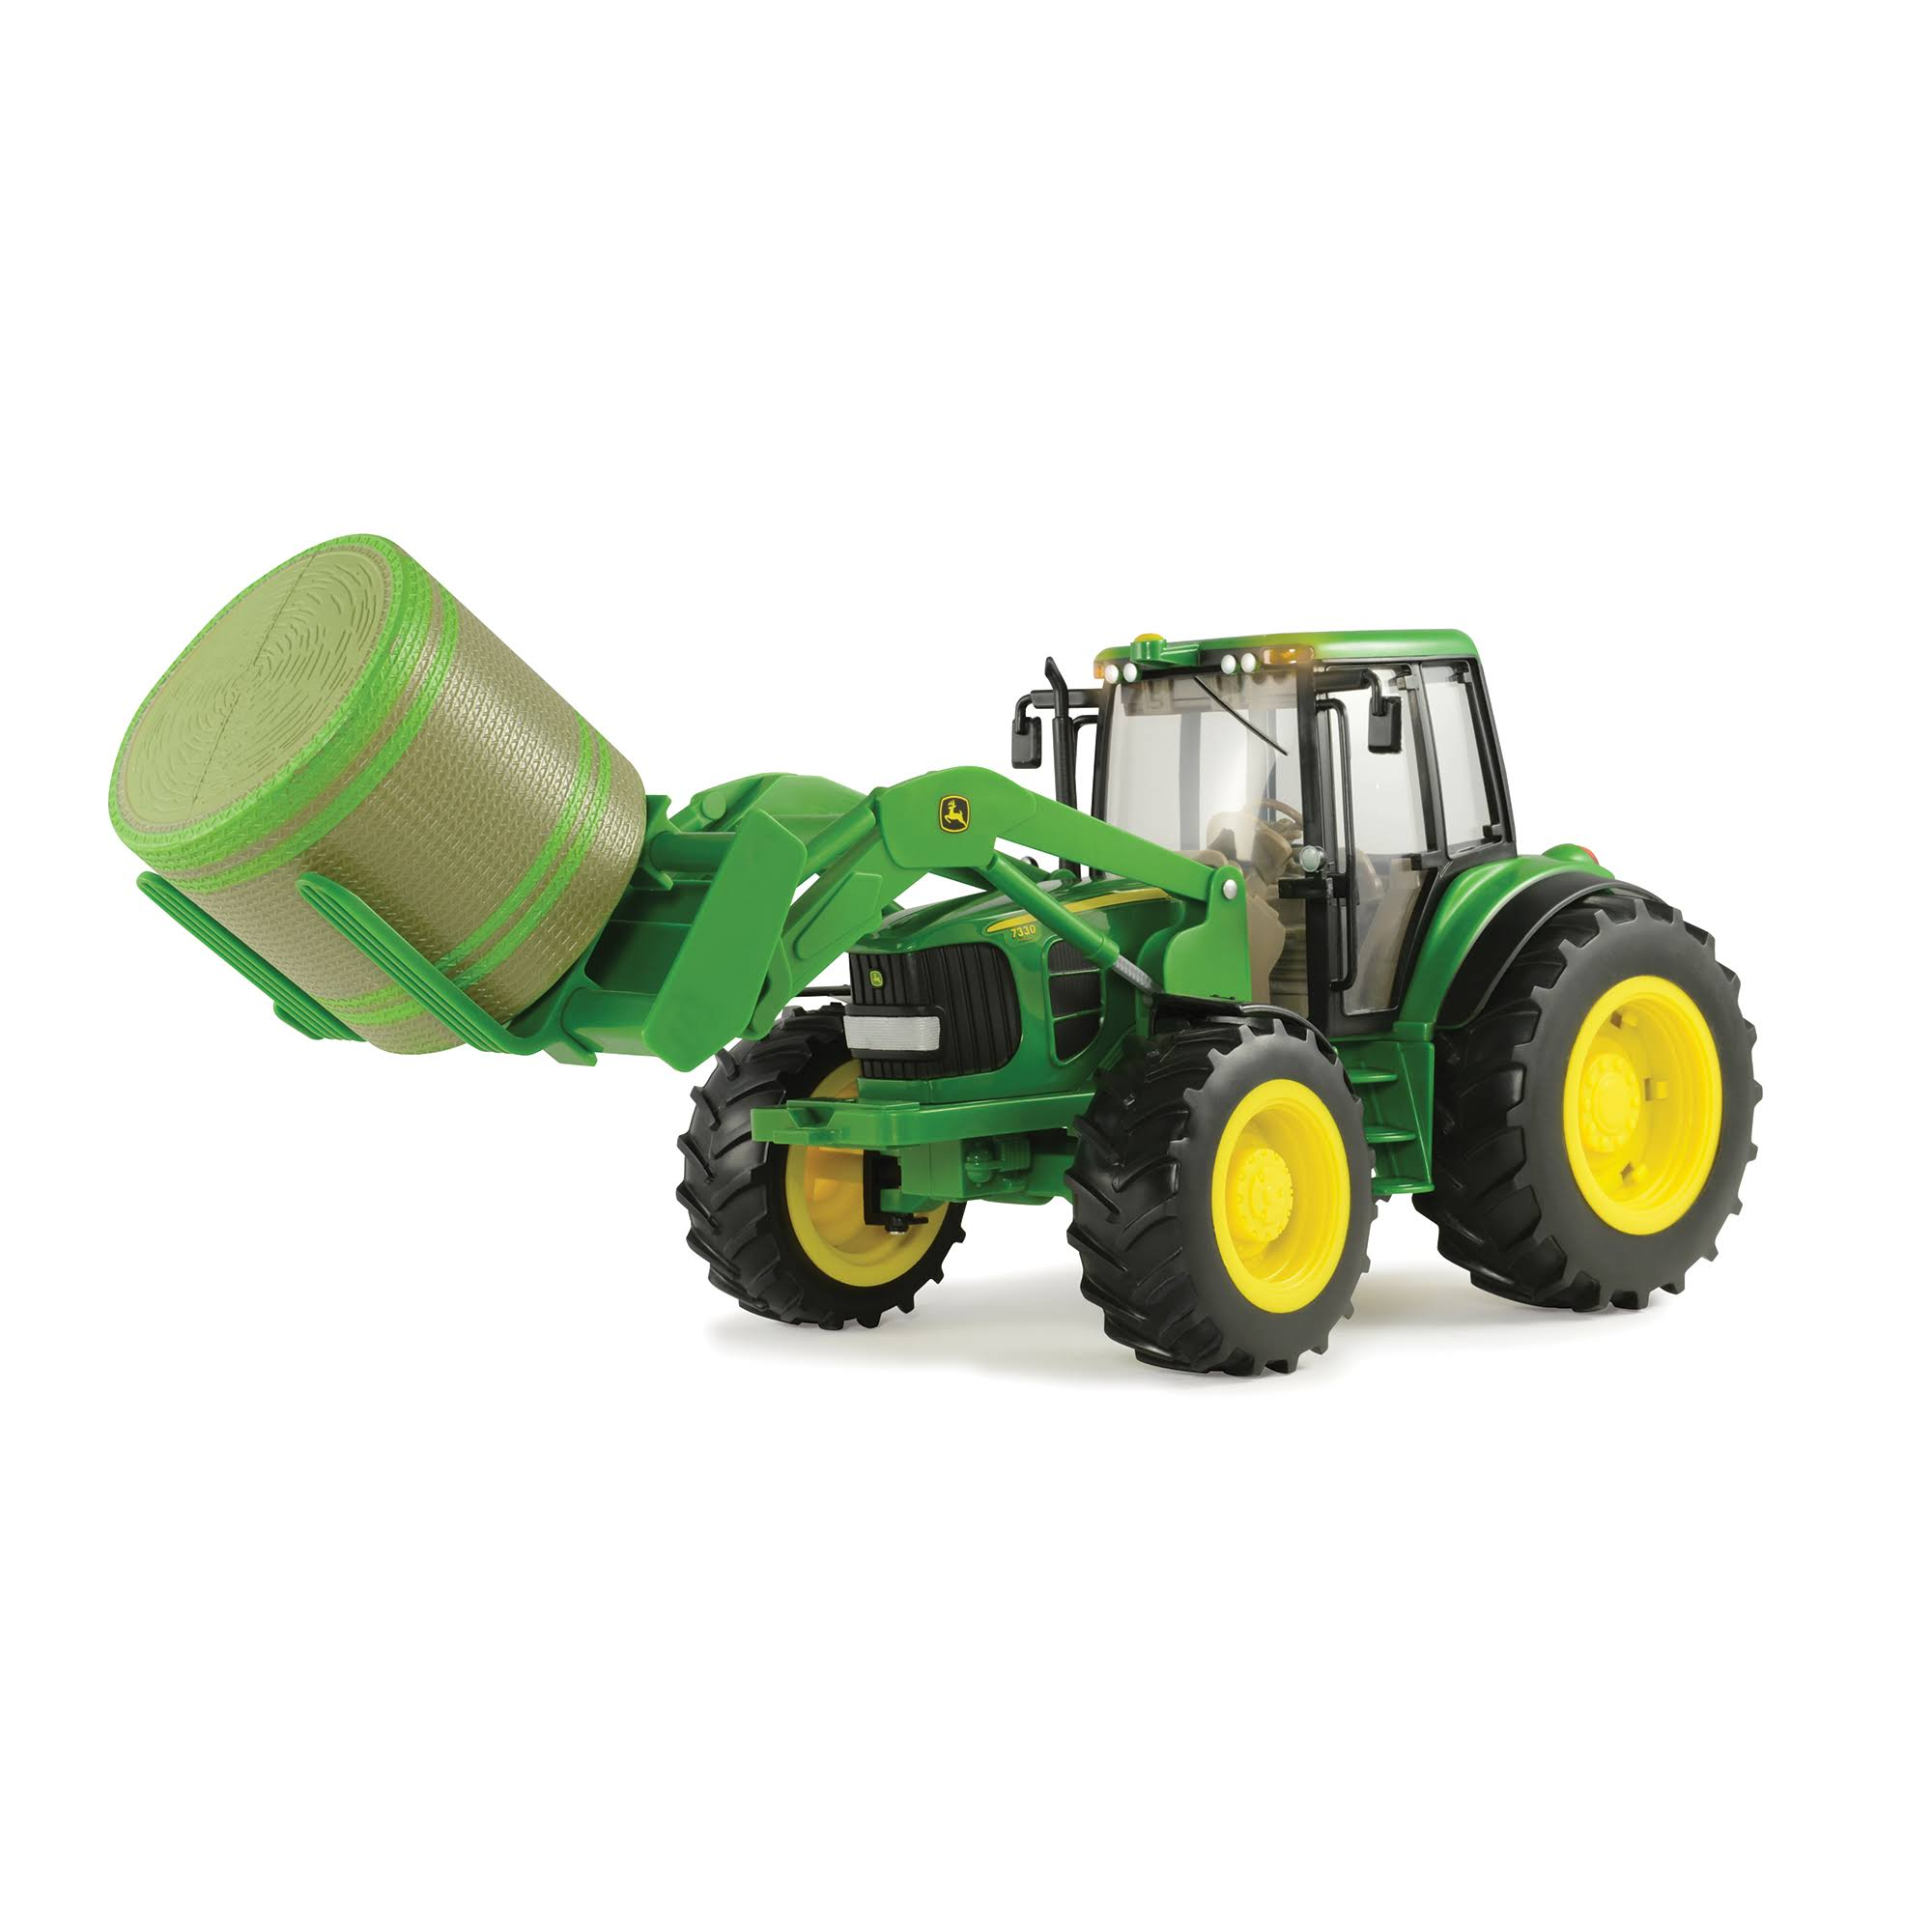 John Deere Big Farm Tractor Model Ground Toy Vehicle - With Mover Round Bale Lights Sounds, Scale 1:16